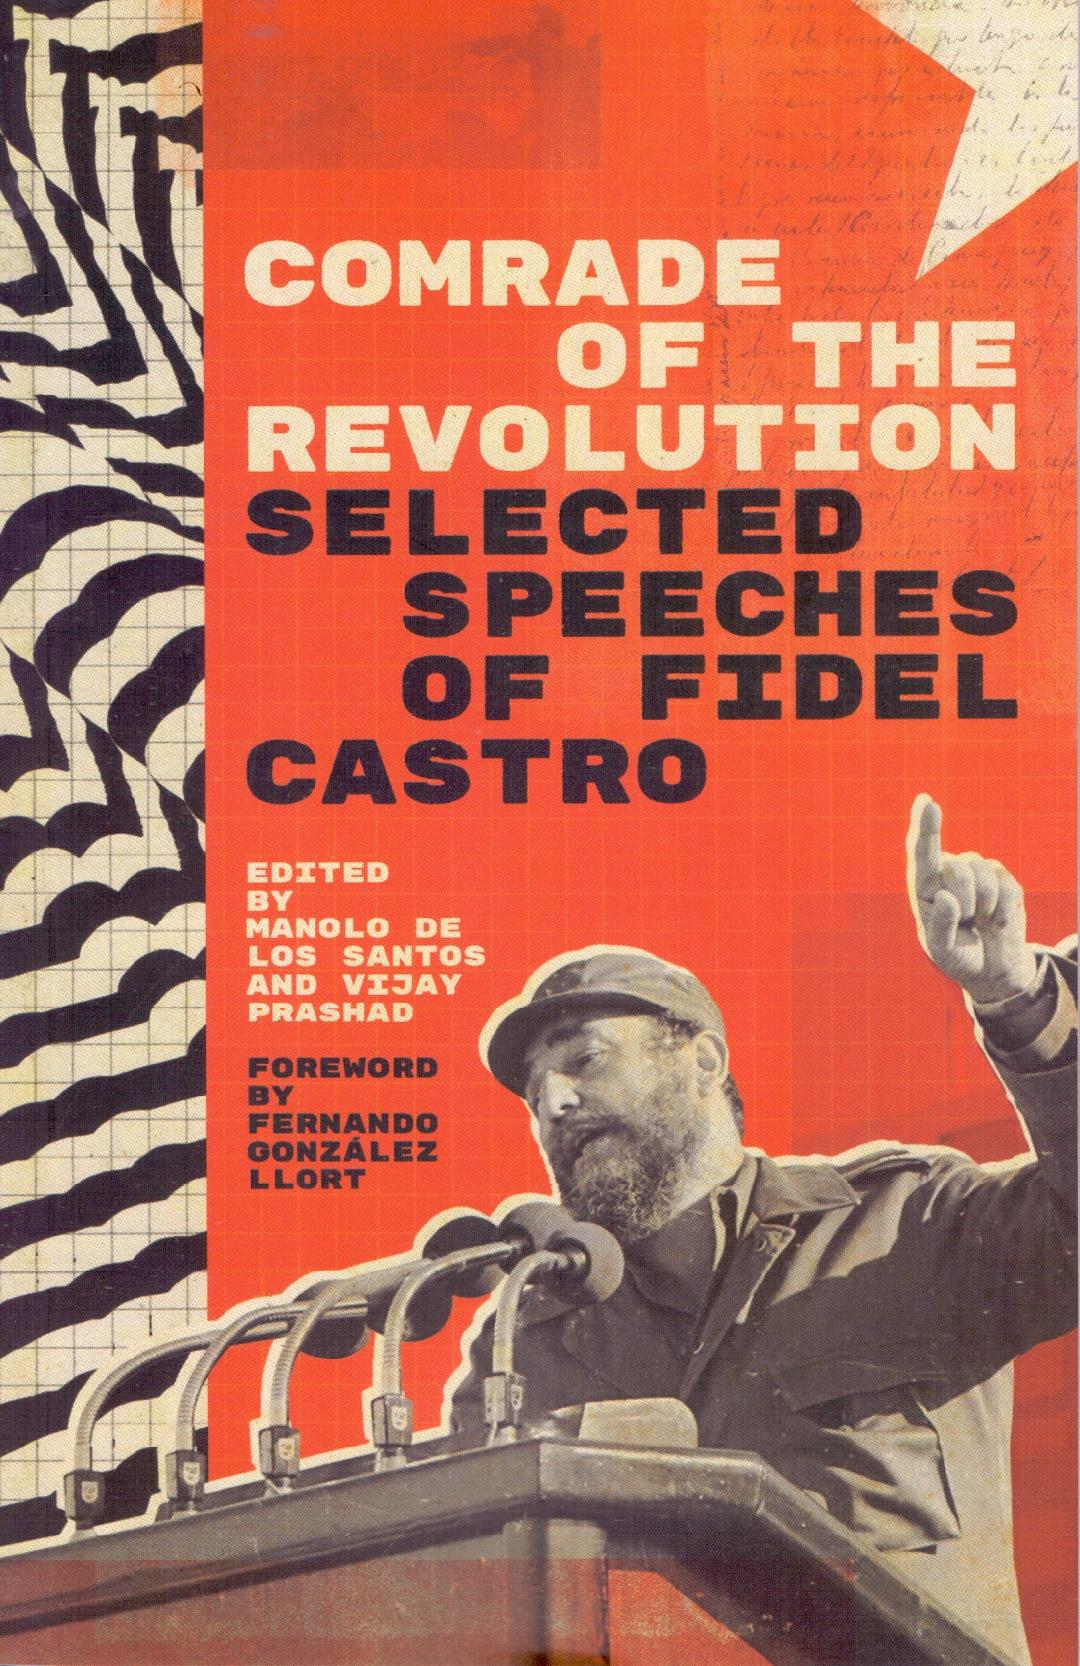 Comrade of The Revolution: Selected Speeches of Fi…